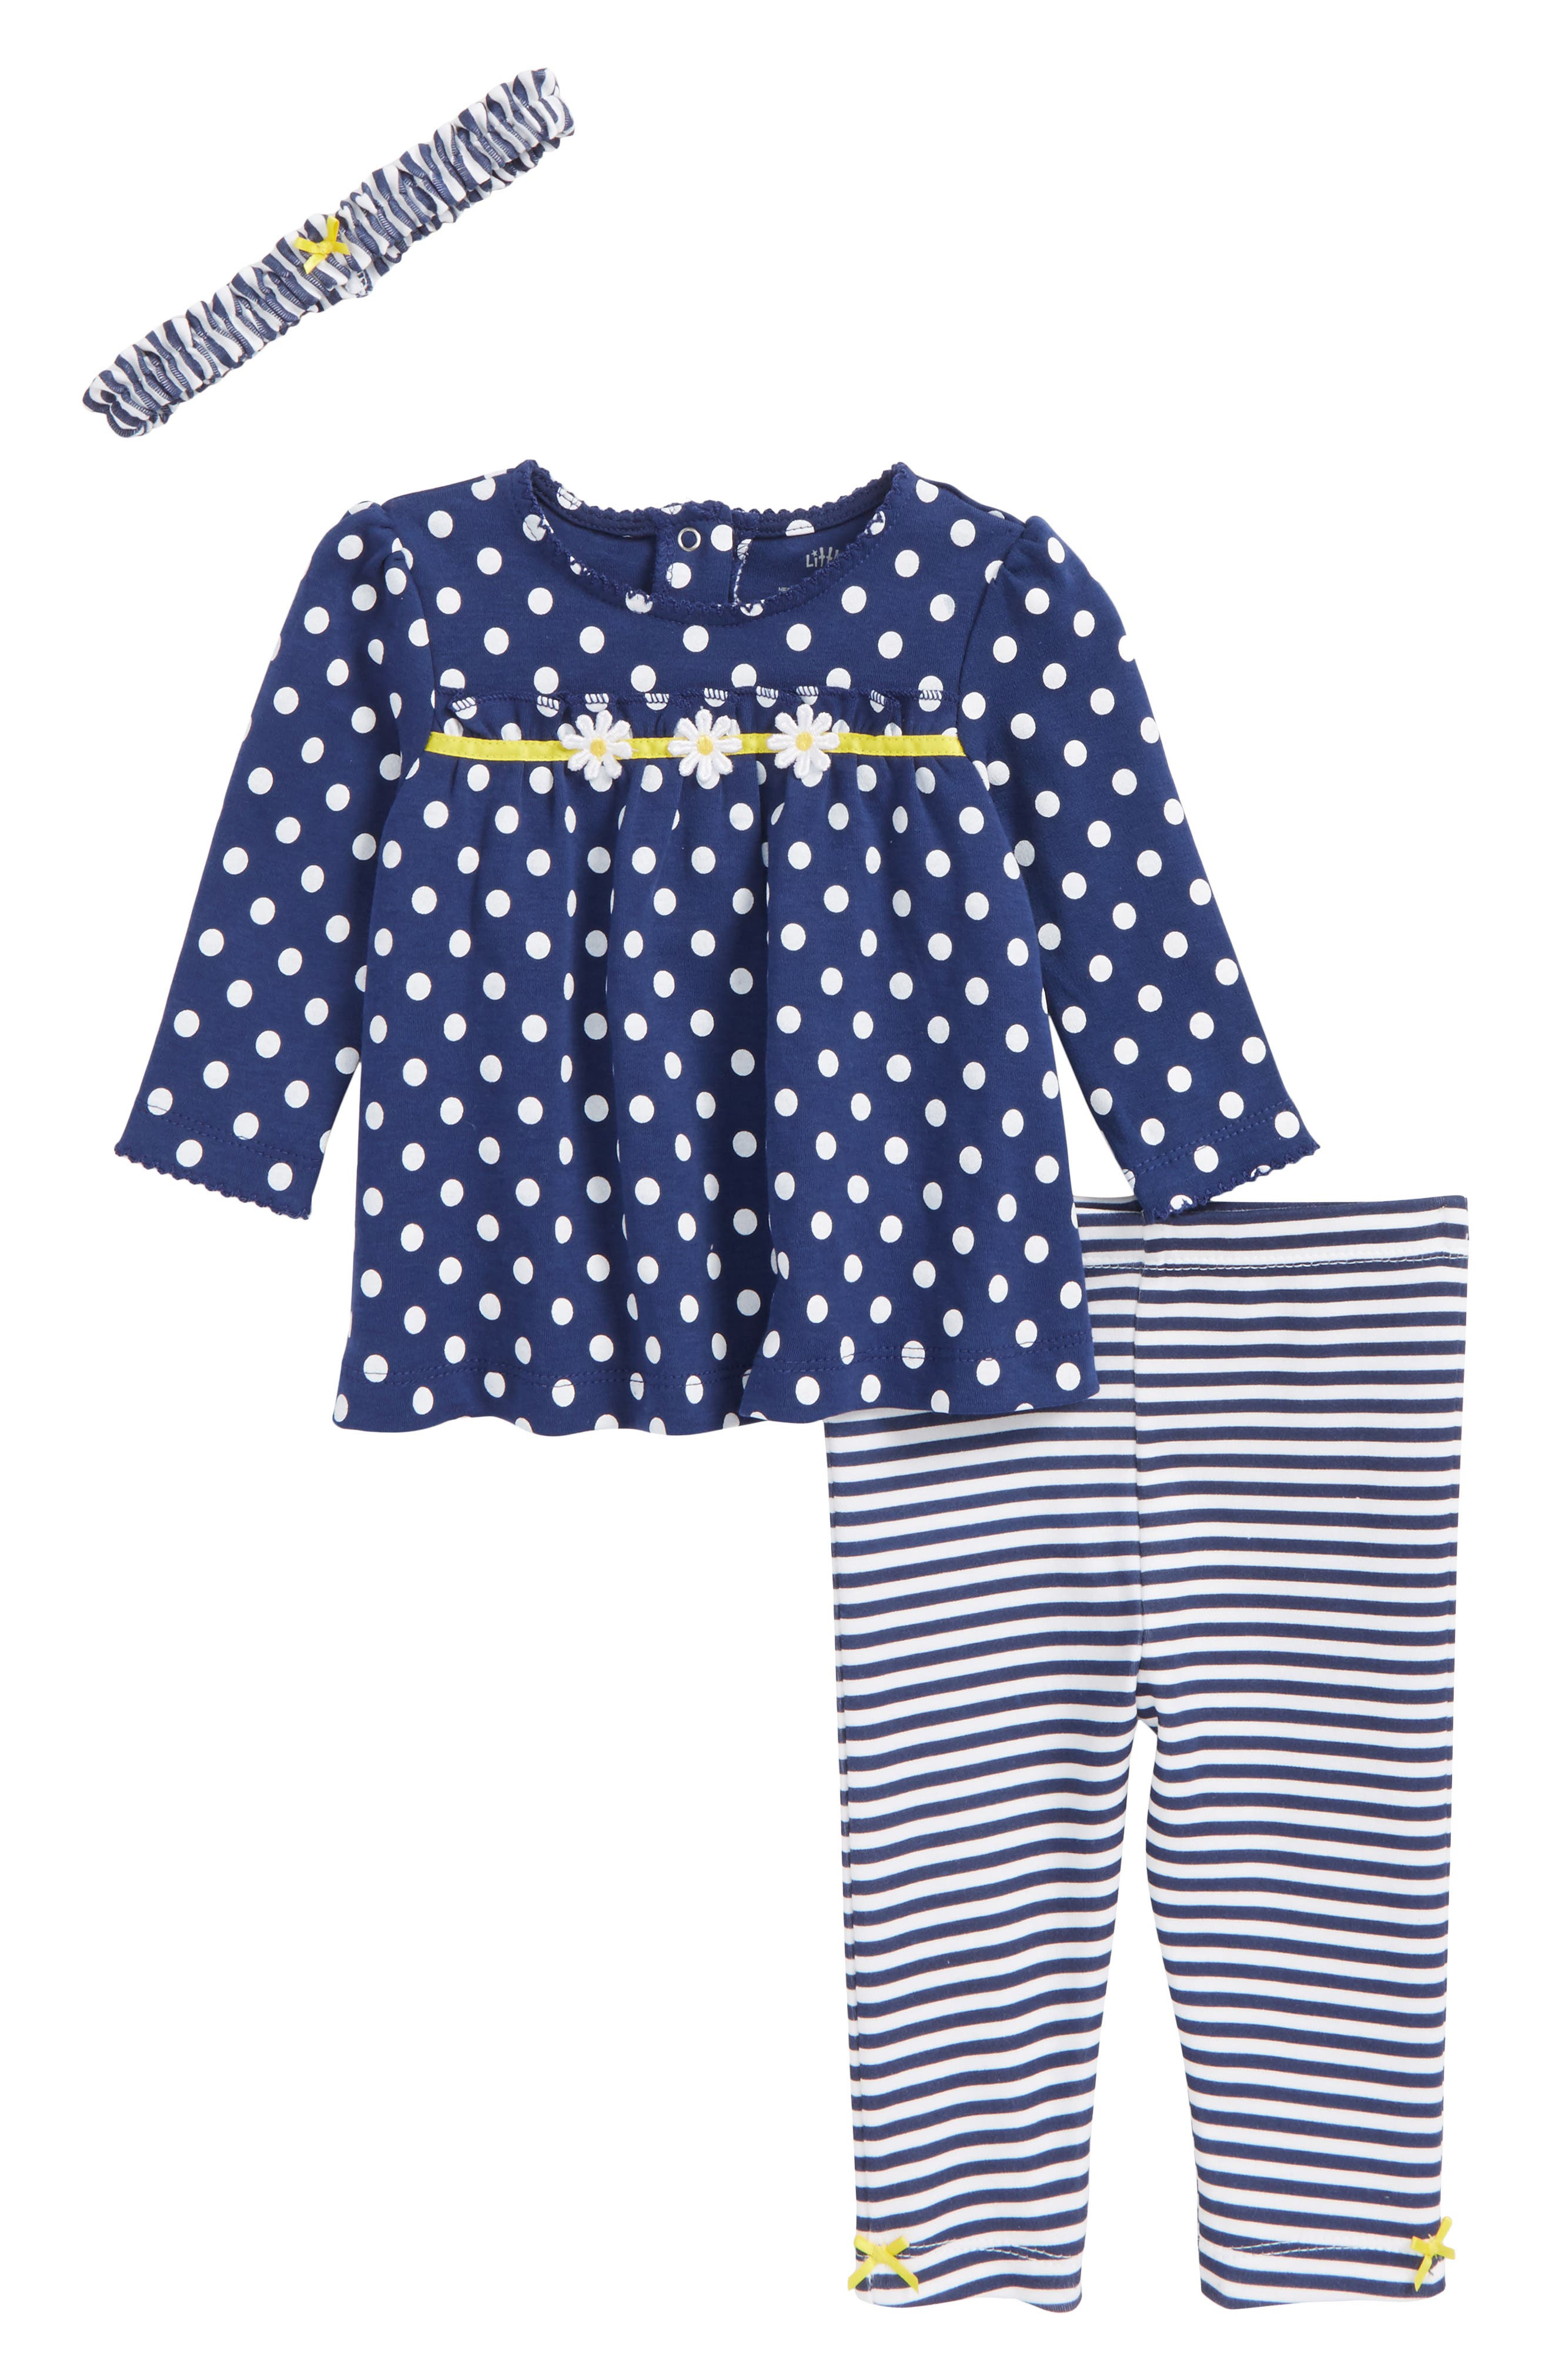 Alternate Image 1 Selected - Little Me Daisy Tunic, Leggings & Headband Set (Baby Girls)